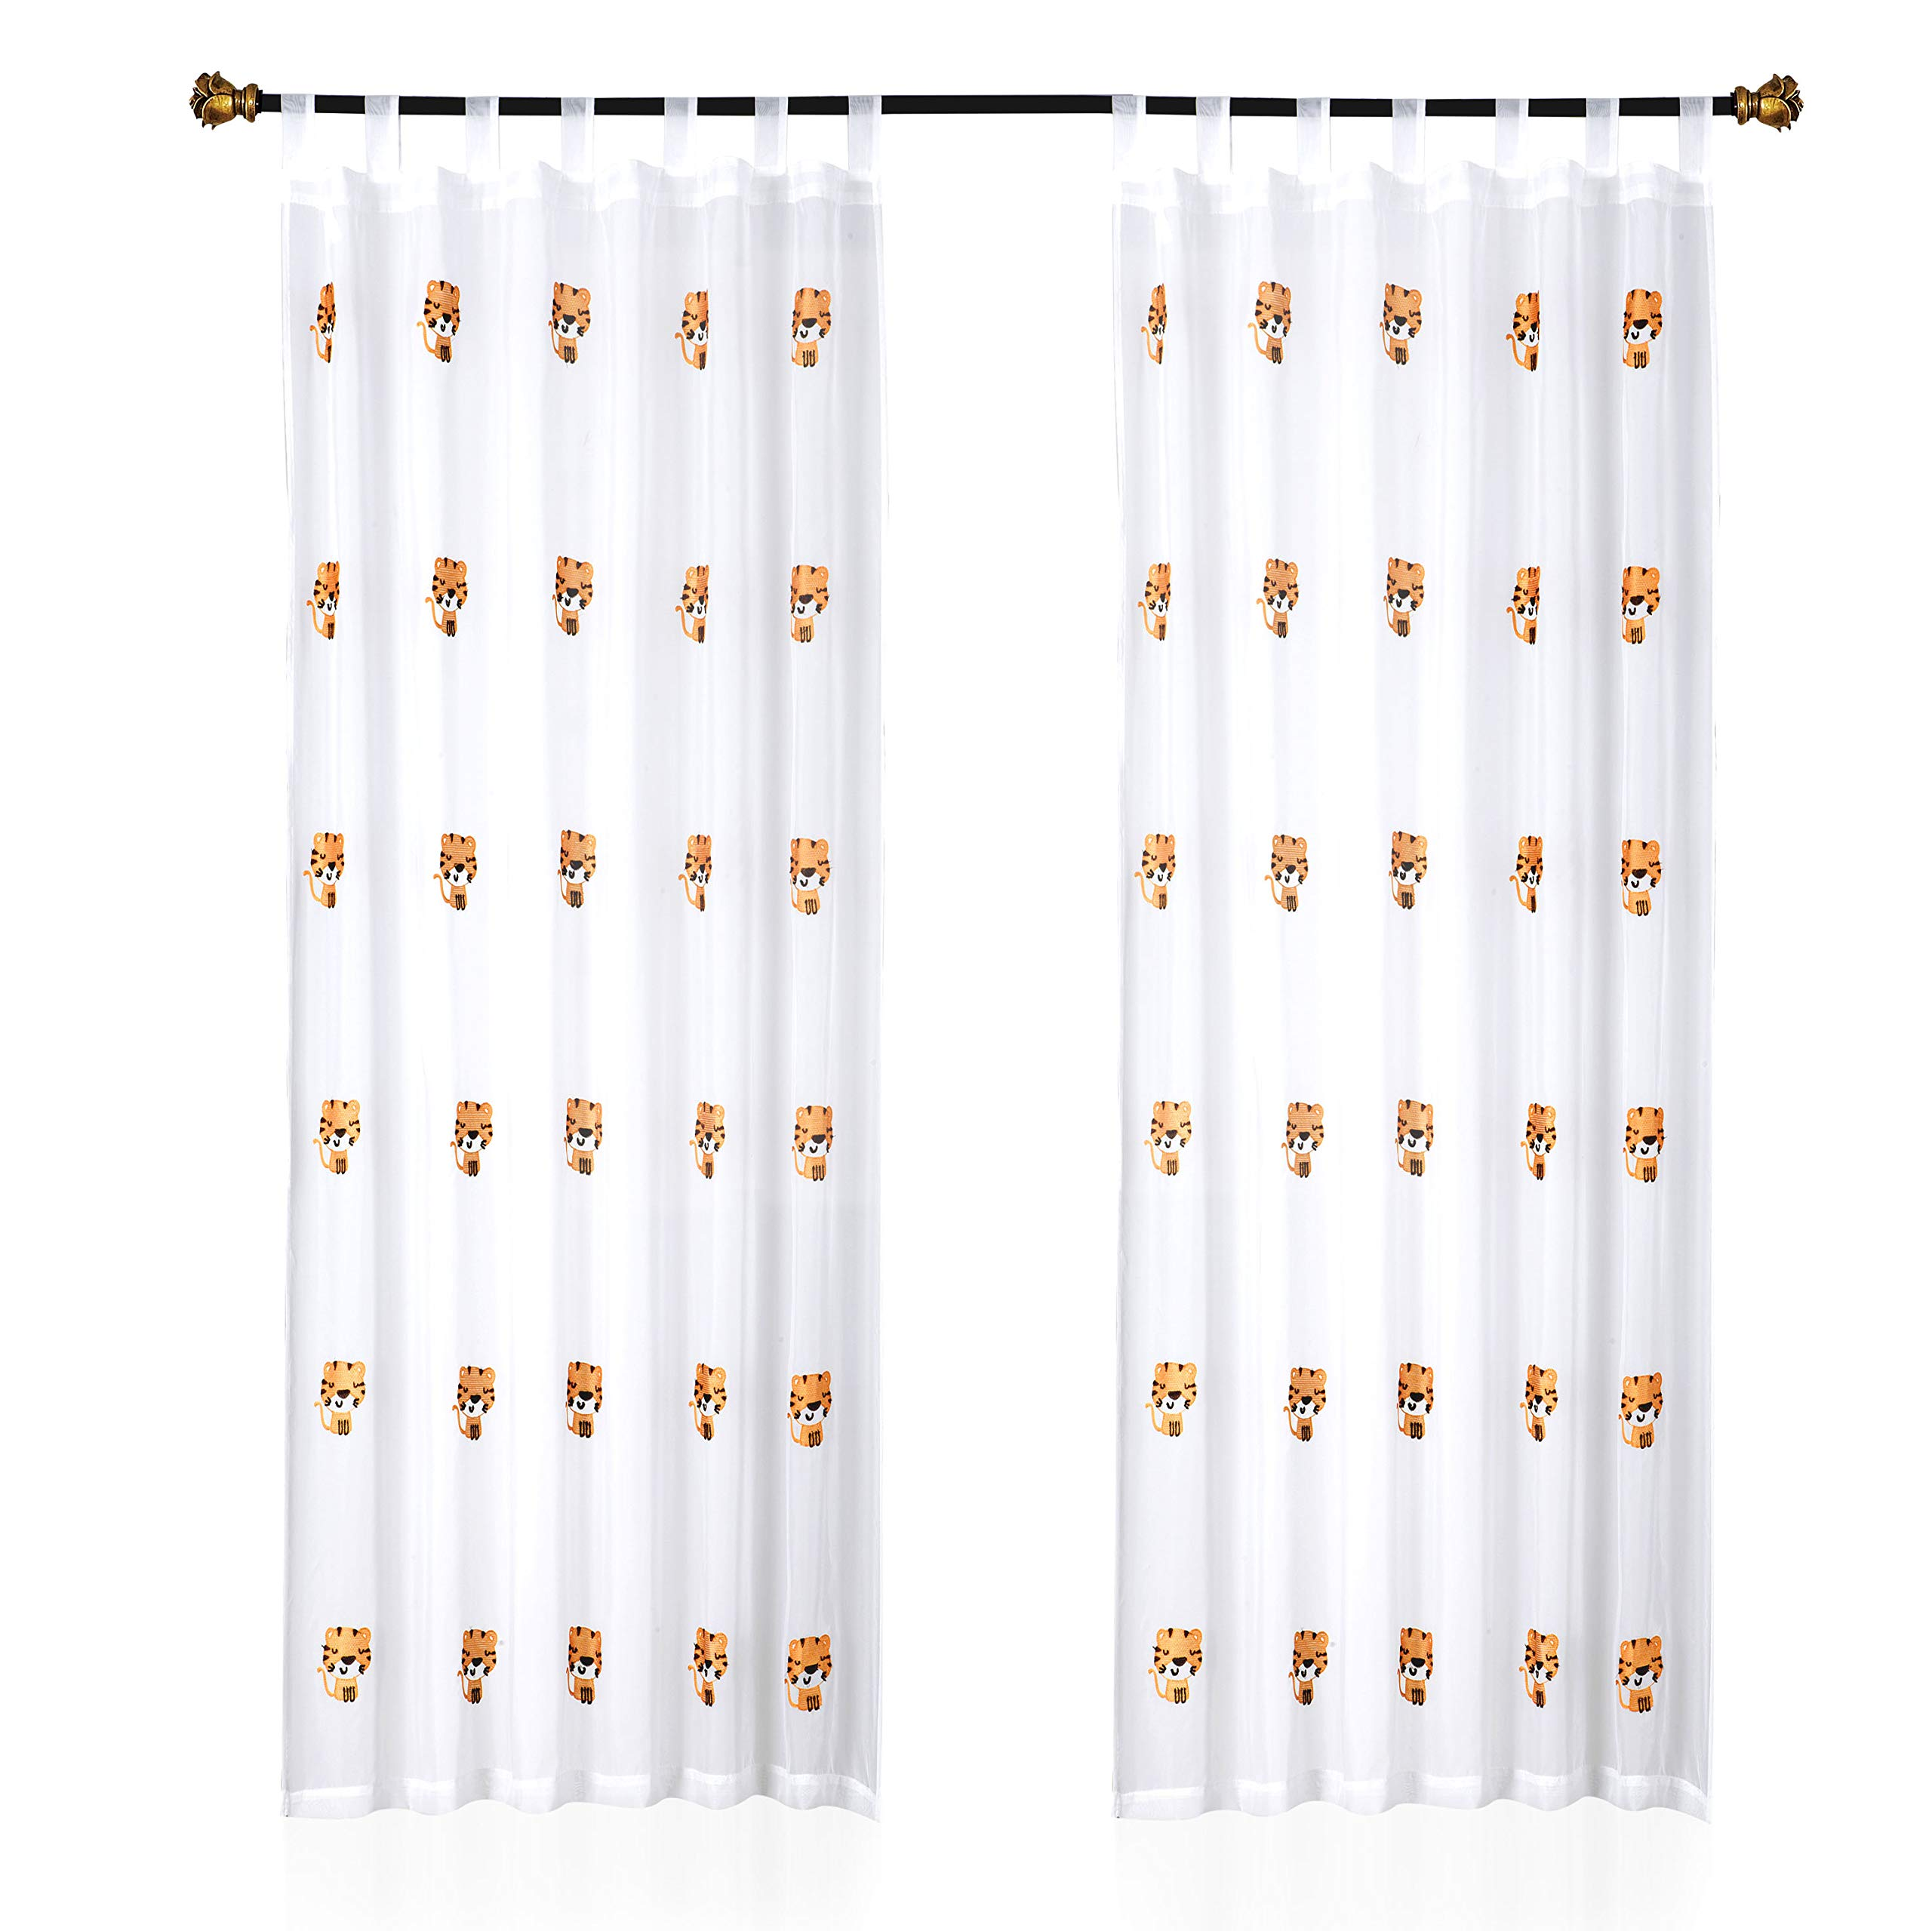 Valea Home White Sheer Curtains for Kids Room Cute Embroidered Design Tab Top Window Drapery Decorative Treatment for Children Bedroom,55 x 86 inch,1 Panel